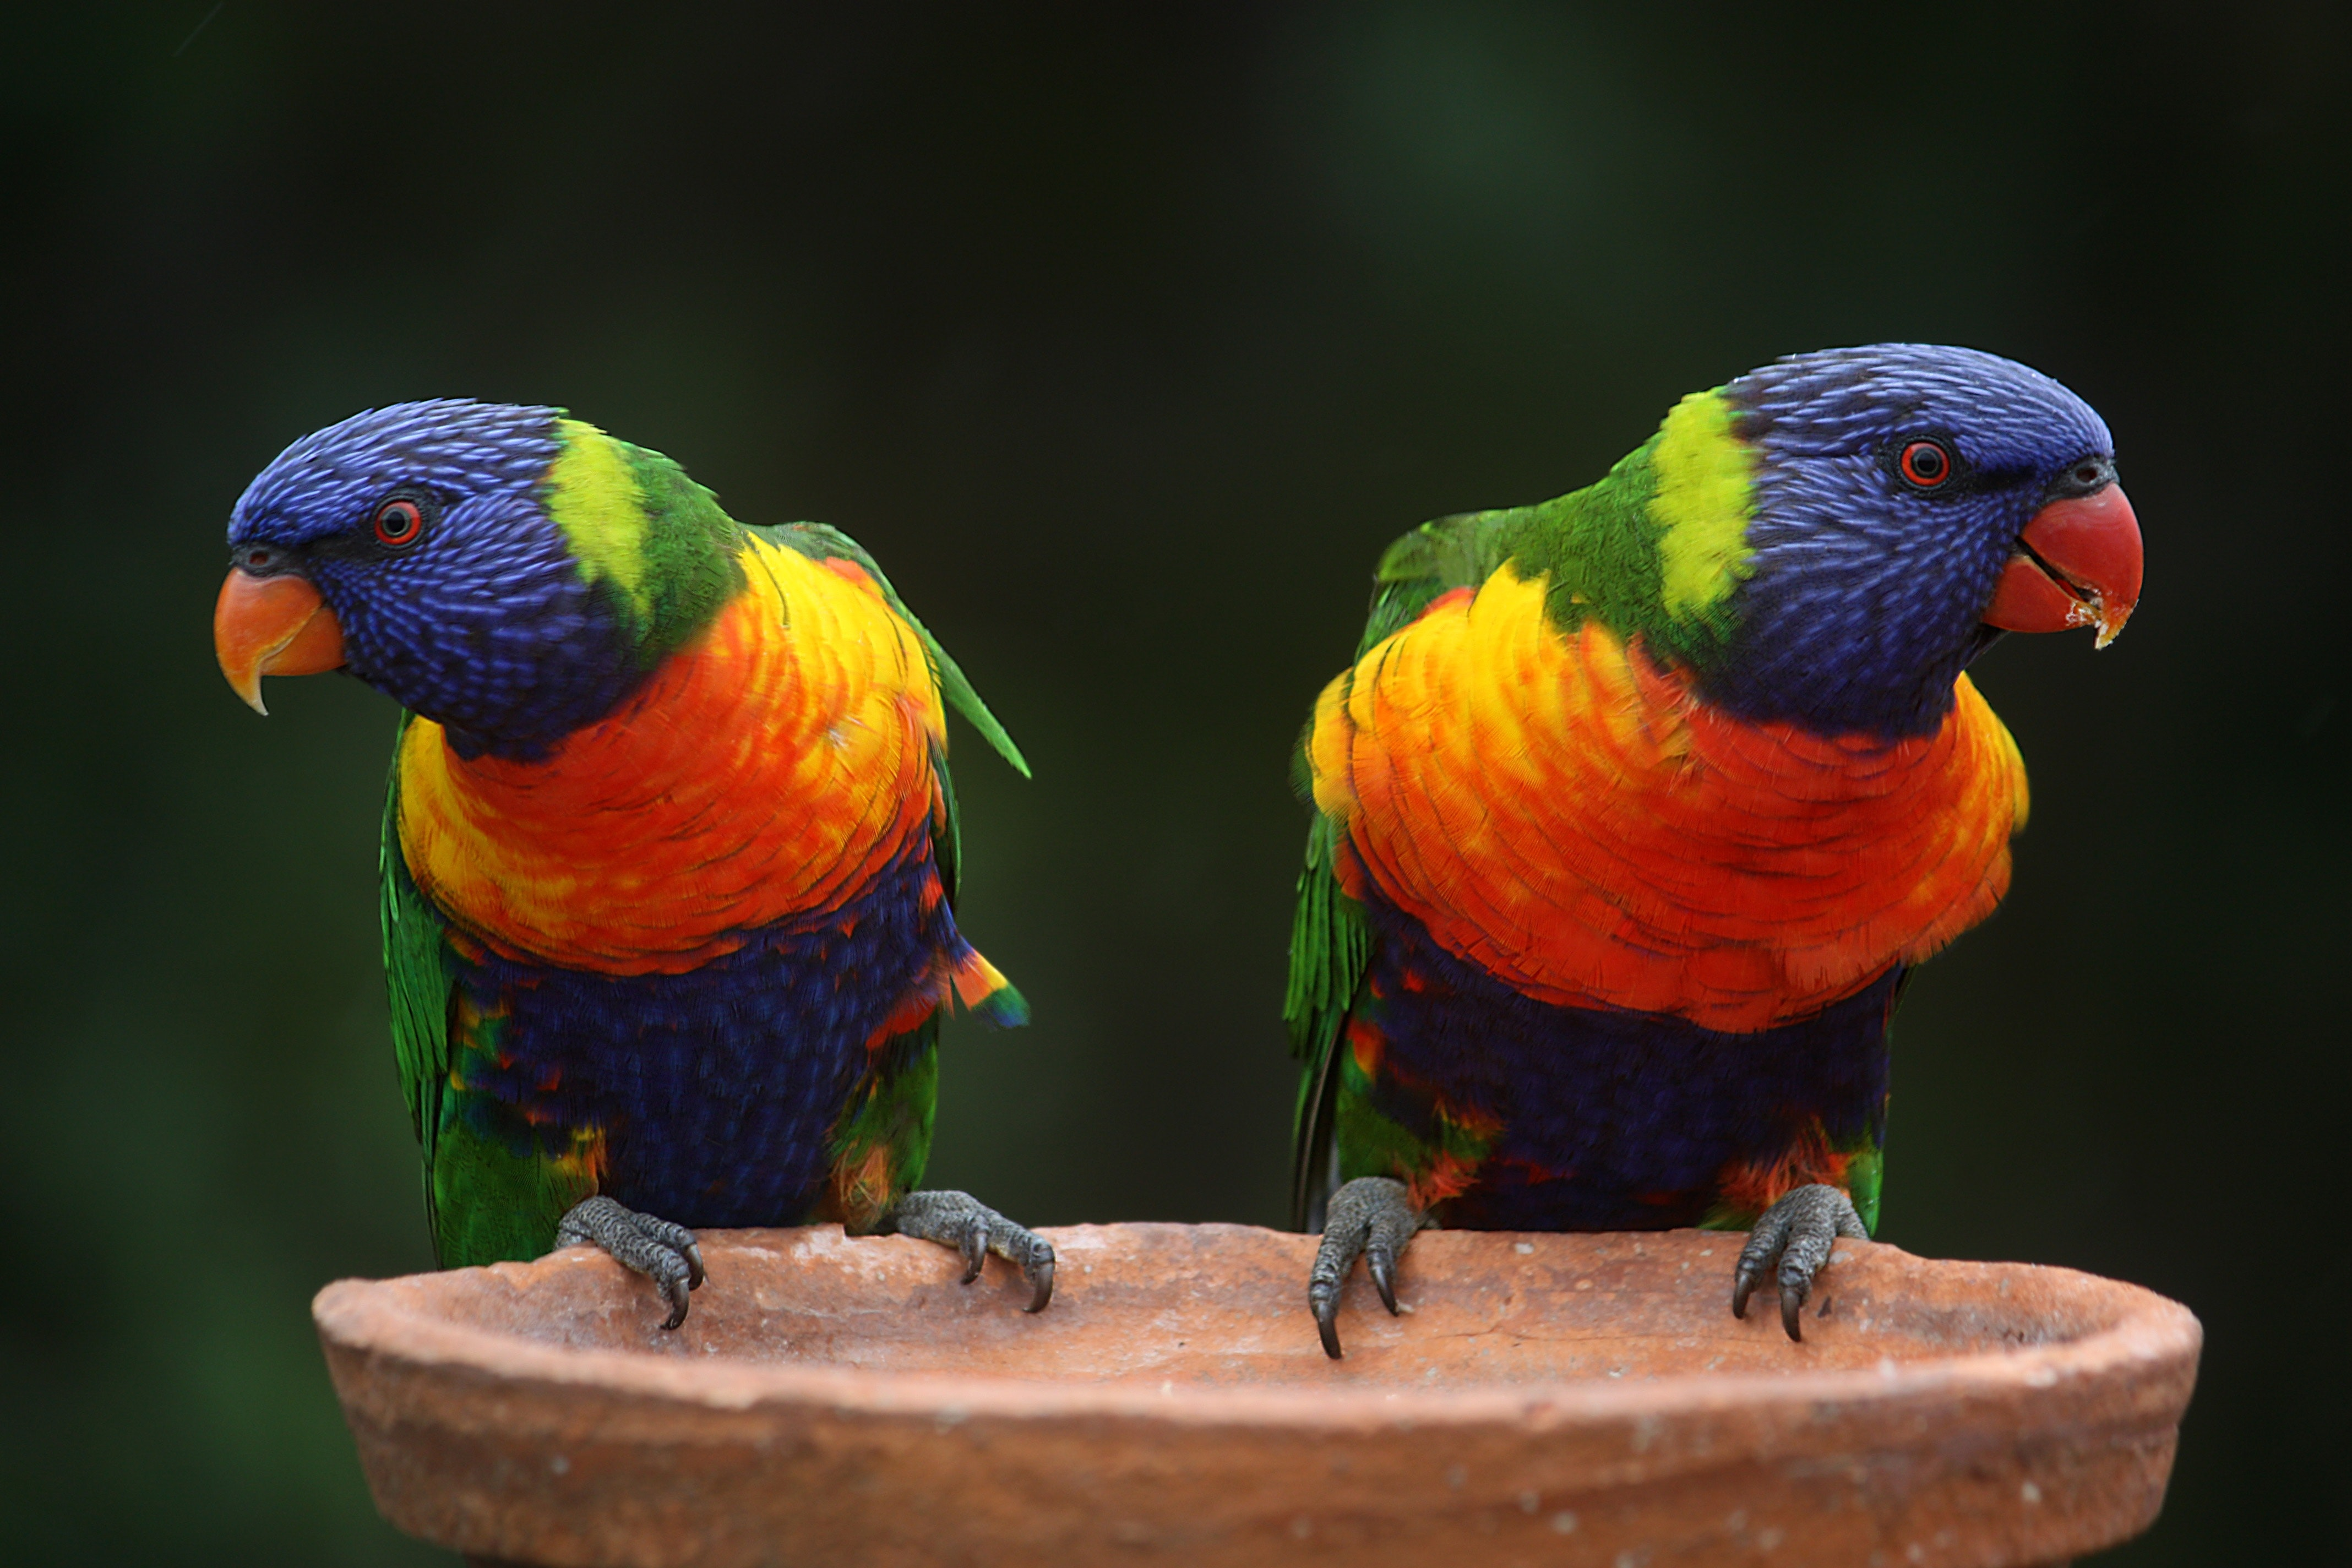 Blue Geeen and Orange Parrot, Parrots, Perched, Plumage, Wildlife, HQ Photo